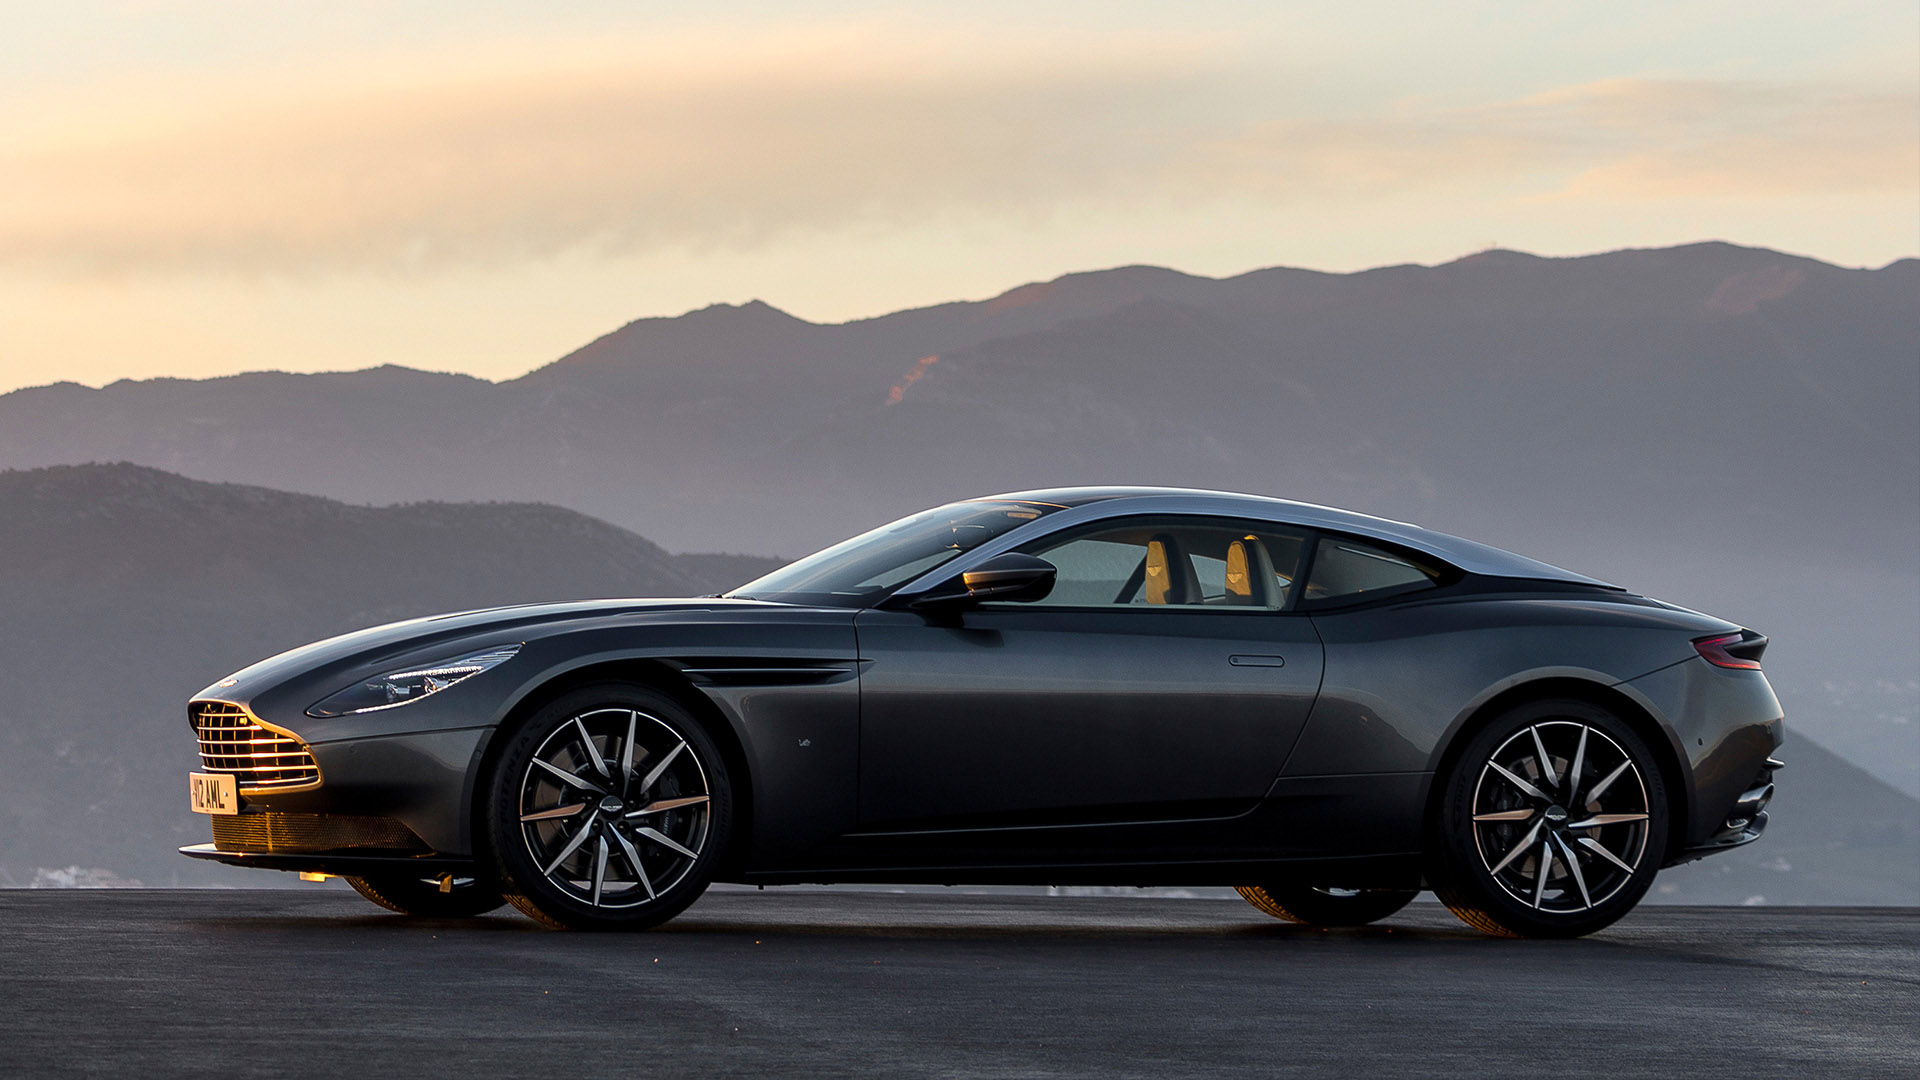 The Aston-Martn DB11 is claimed to be the company's mst powerful, fuel-efficient as fastest-accelerating model ever